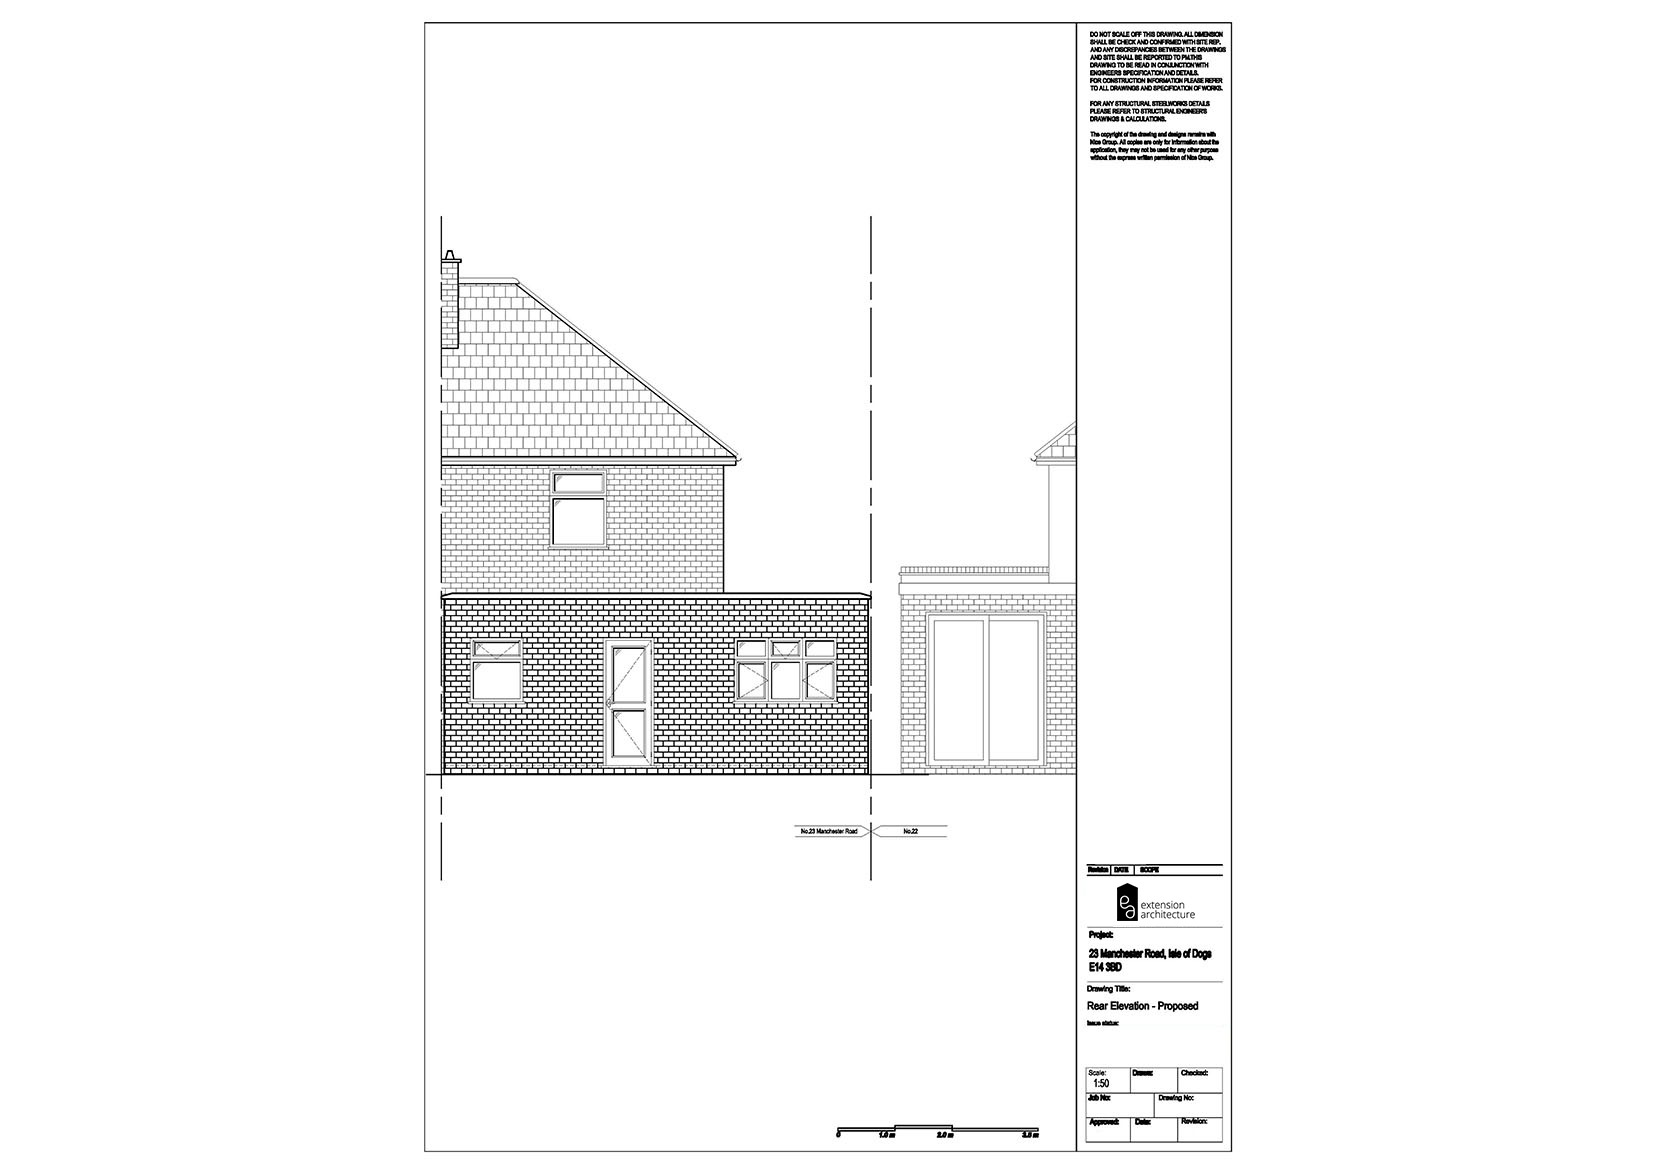 RESIDENTIAL 23MR proposed_convert to flats…page 07